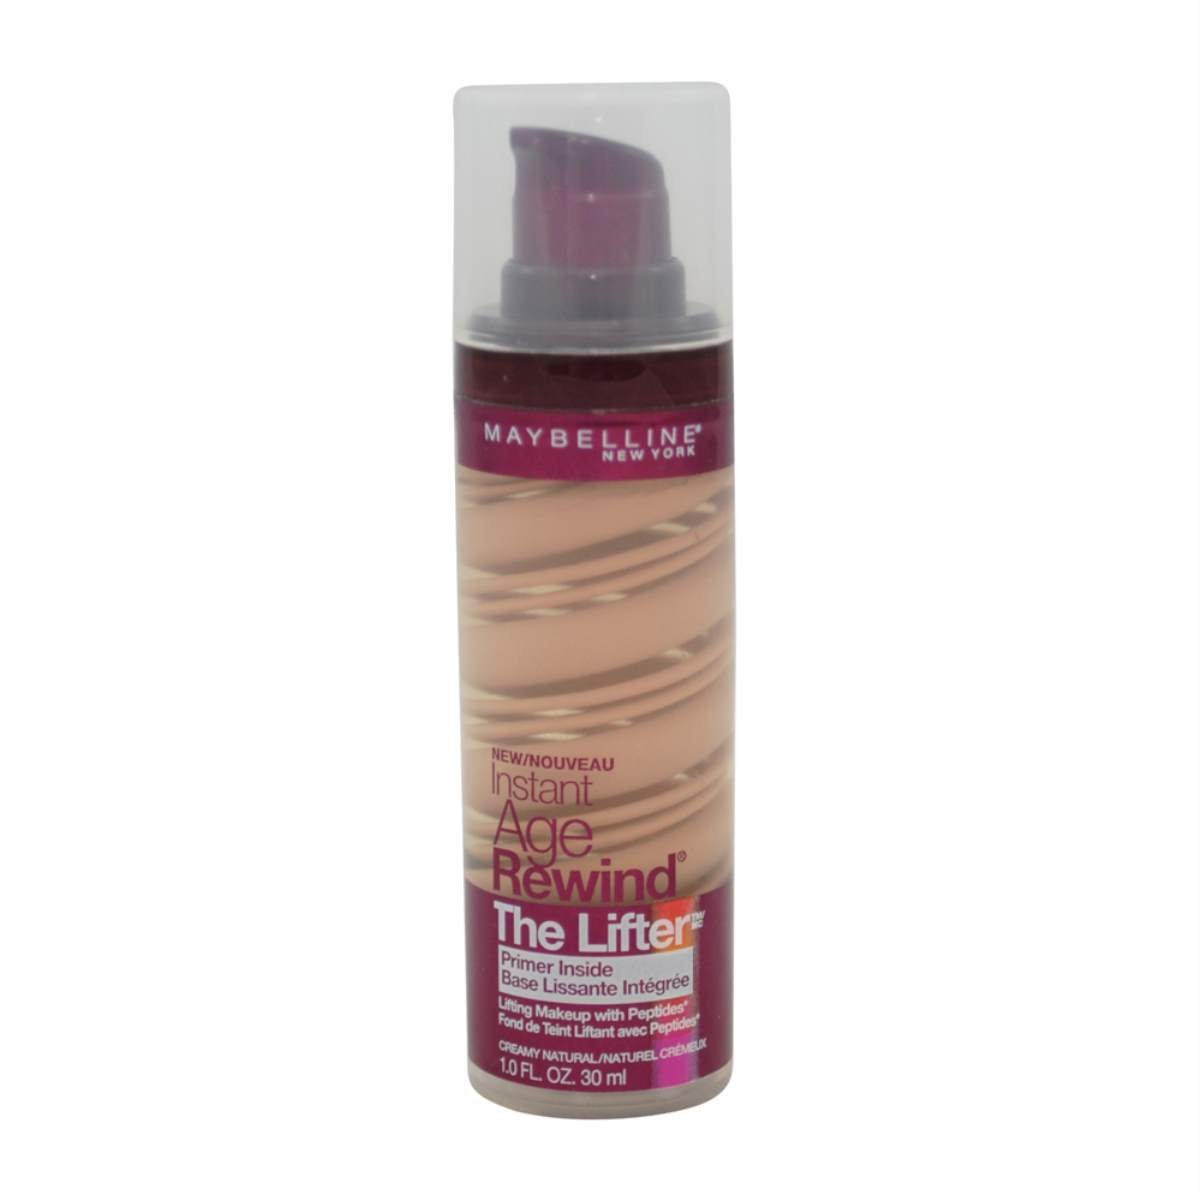 Maybelline New York Instant Age Rewind The Lifter Makeup, Creamy Natural, 1 Fluid Ounce (Pack of 2)